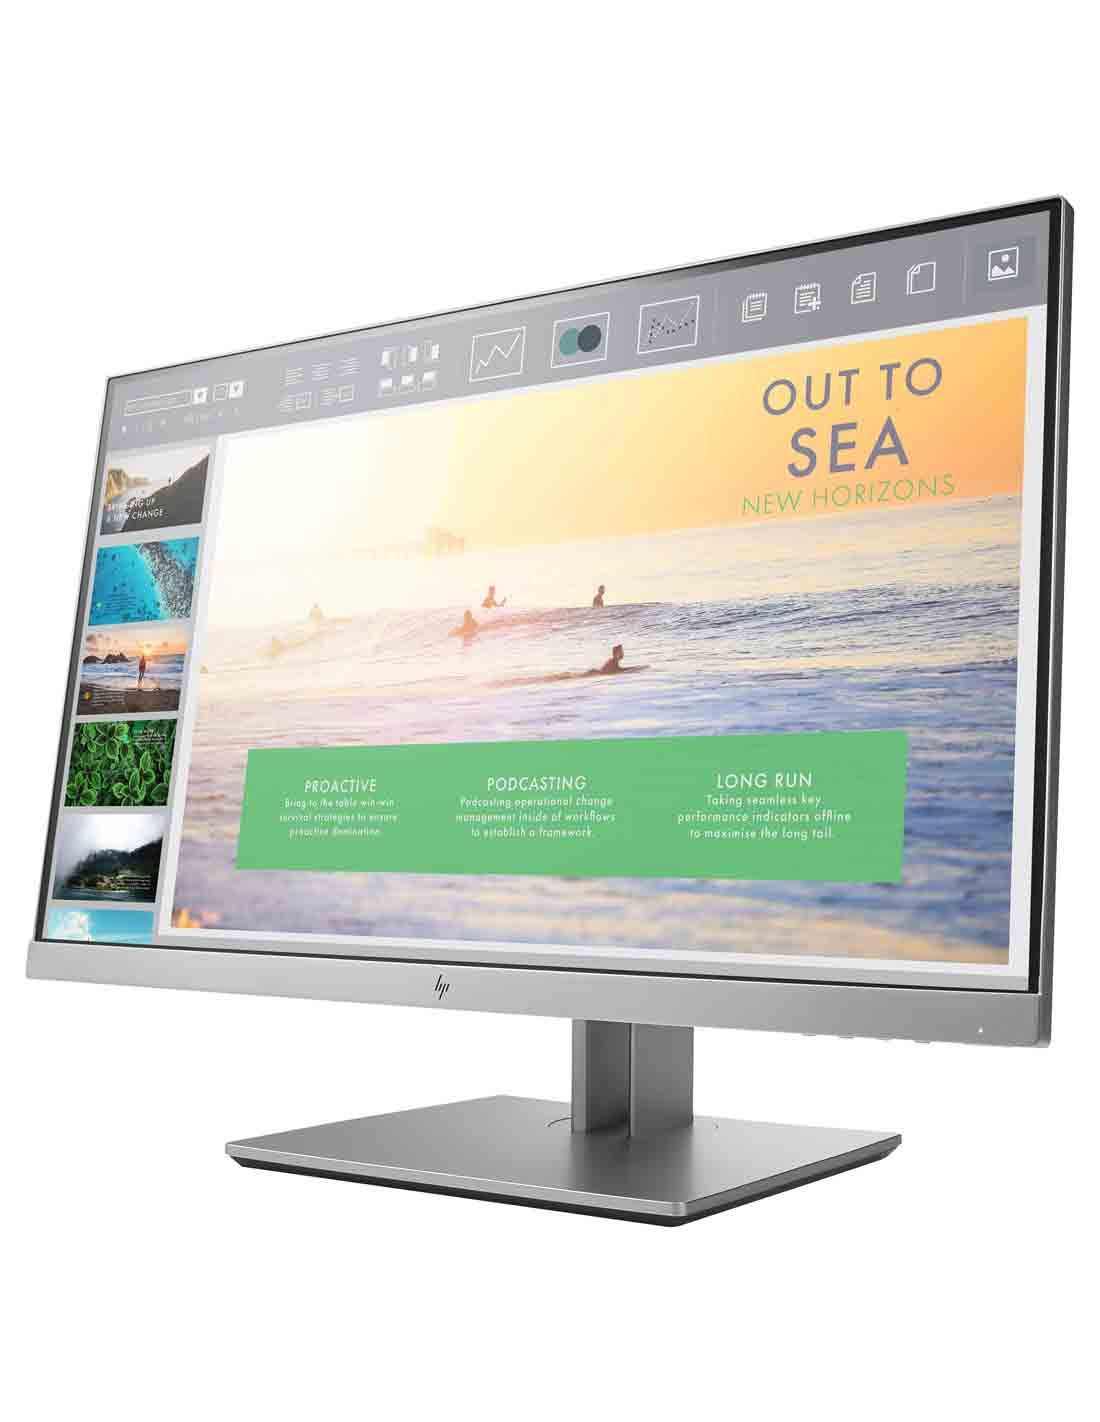 HP EliteDisplay E233 23-inch Monitor images and photos